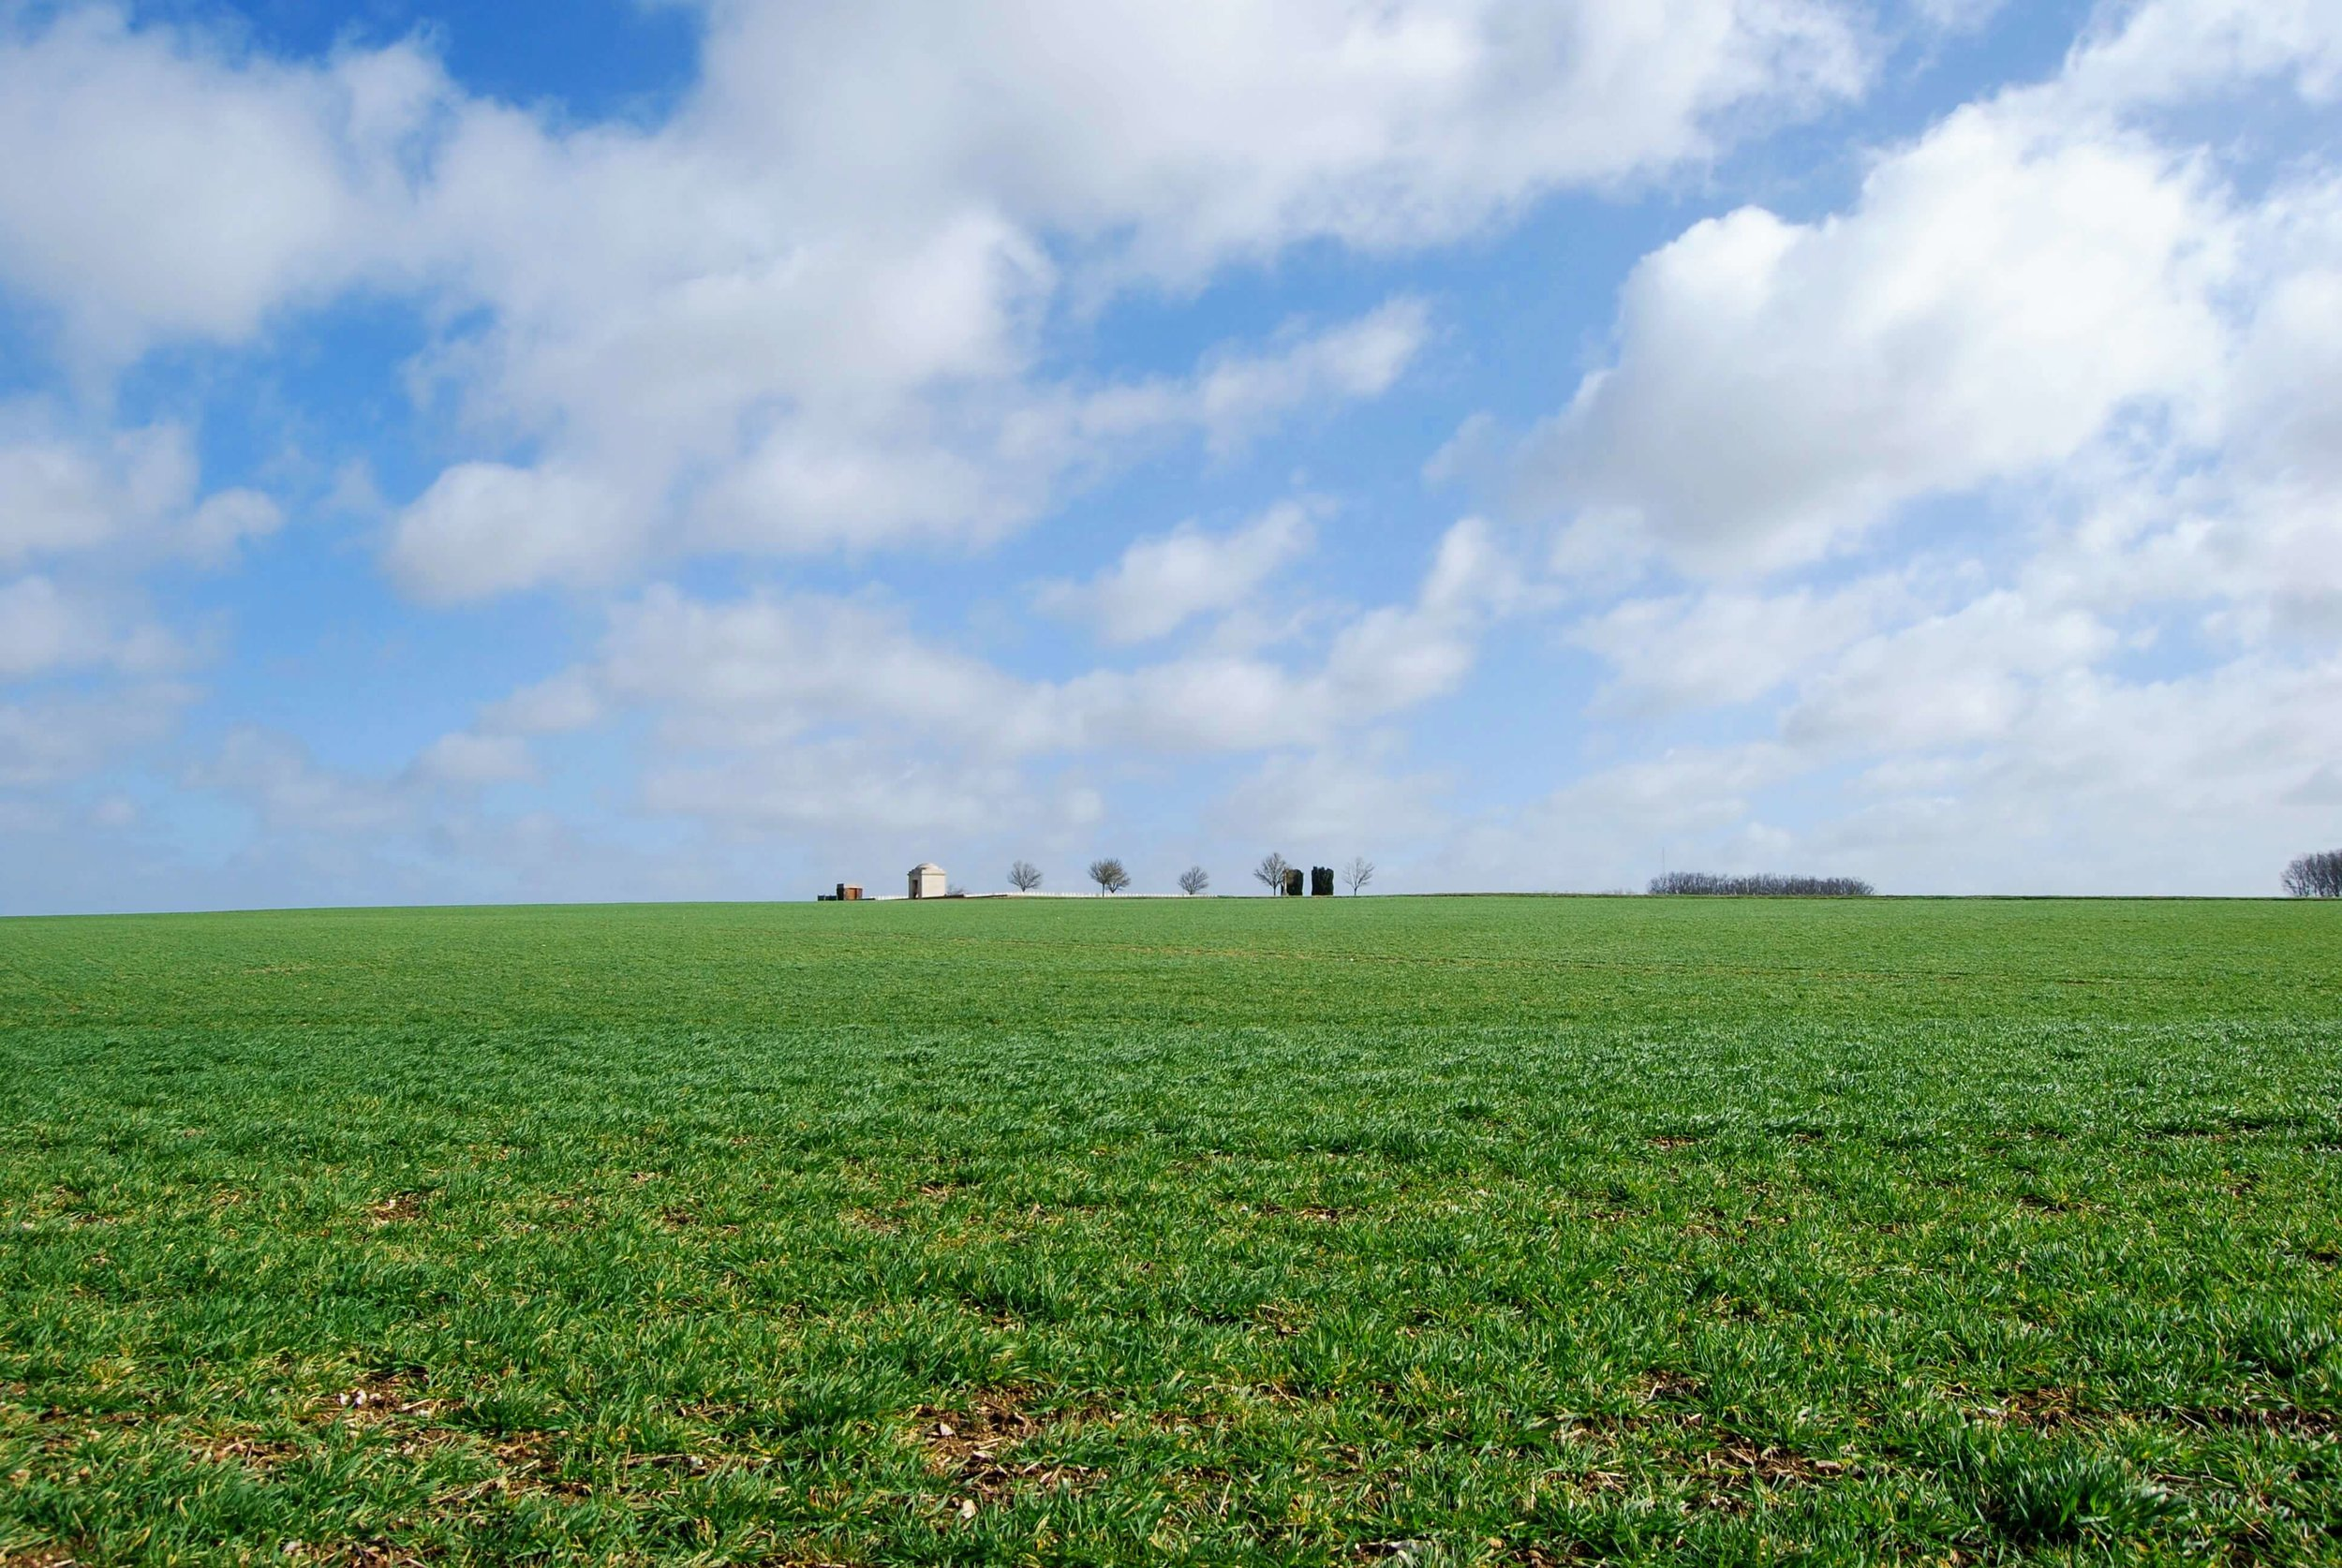 Looking across No Man's Land to the German lines in Thiepval